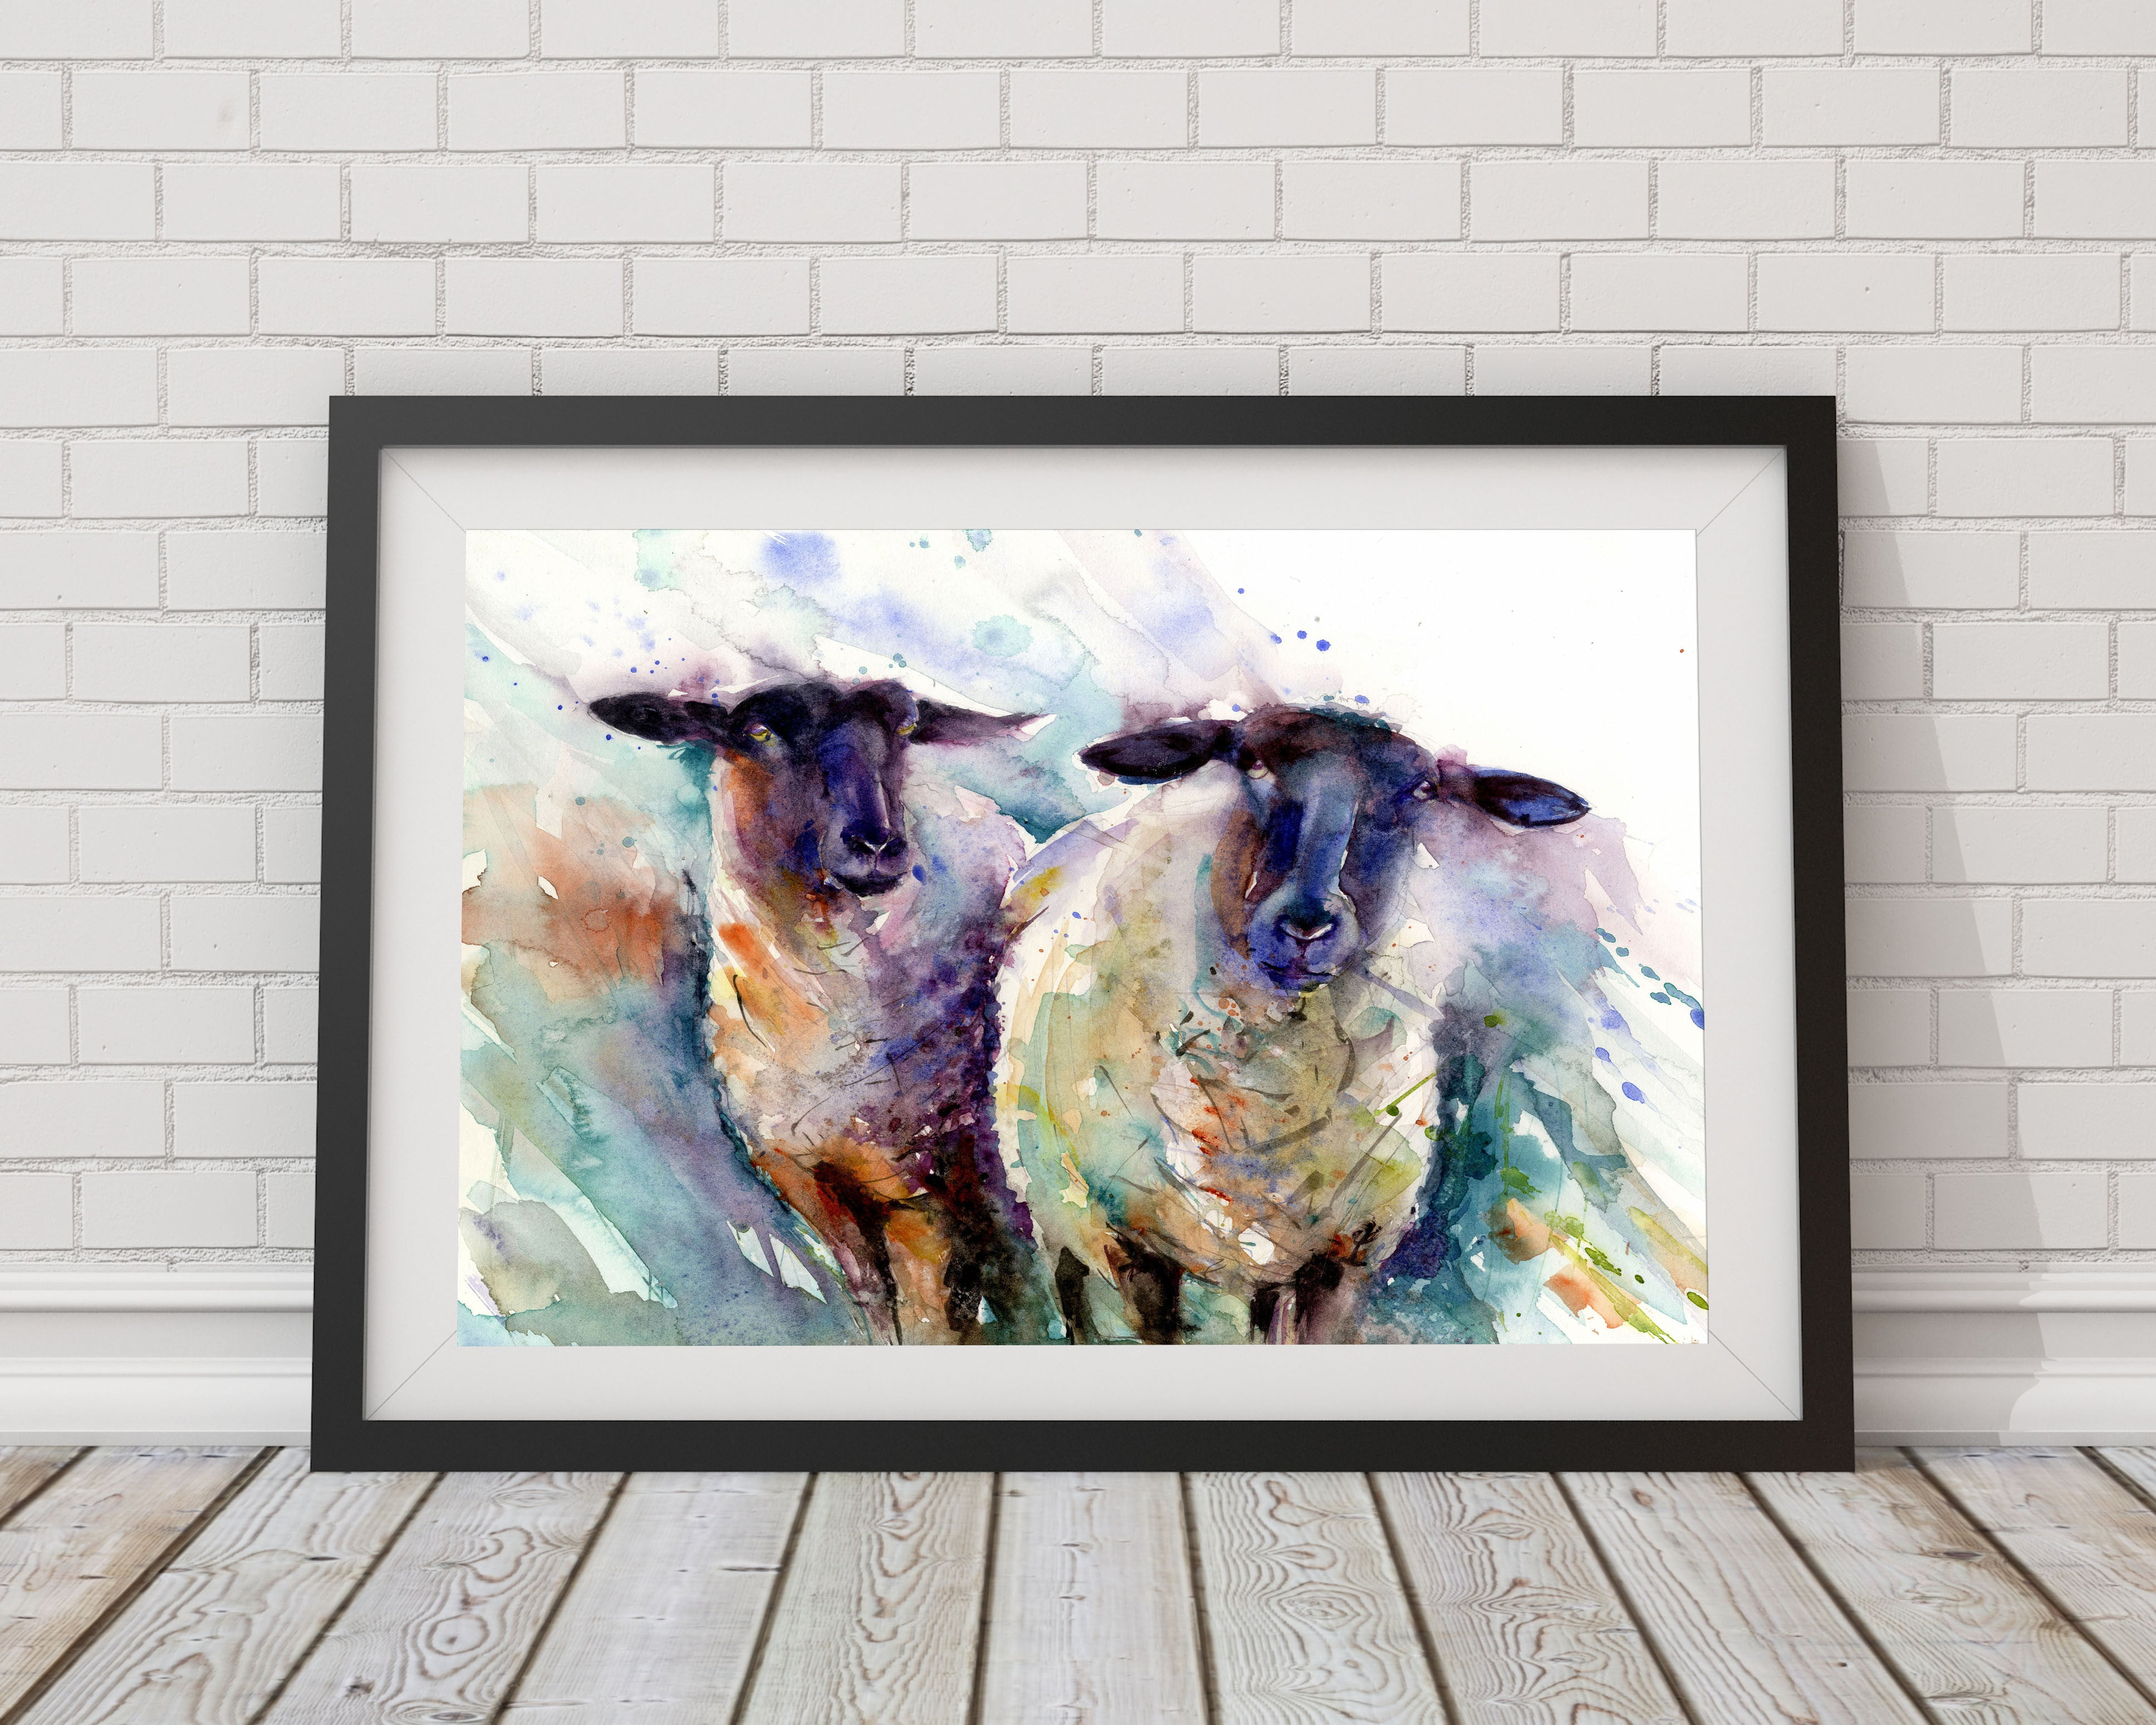 Limited edition print of original 2 ewes sheep painting for Framed photos for sale